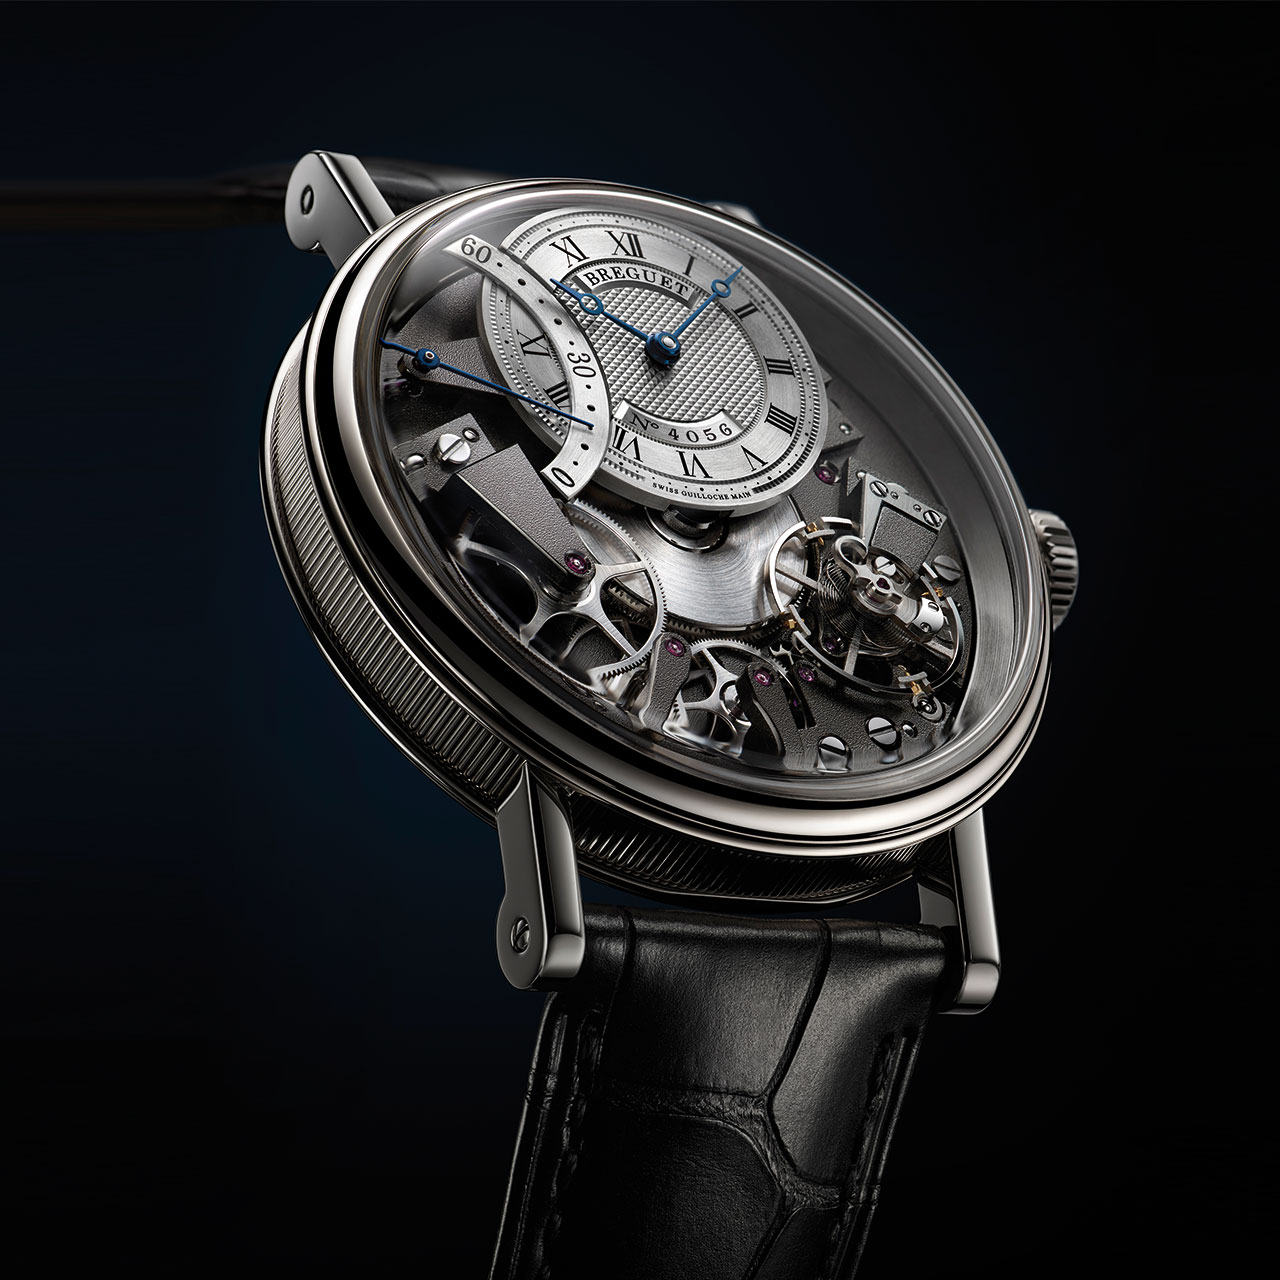 Breguet Tradition Automatique Seconde Rétrograde 7097 Watch